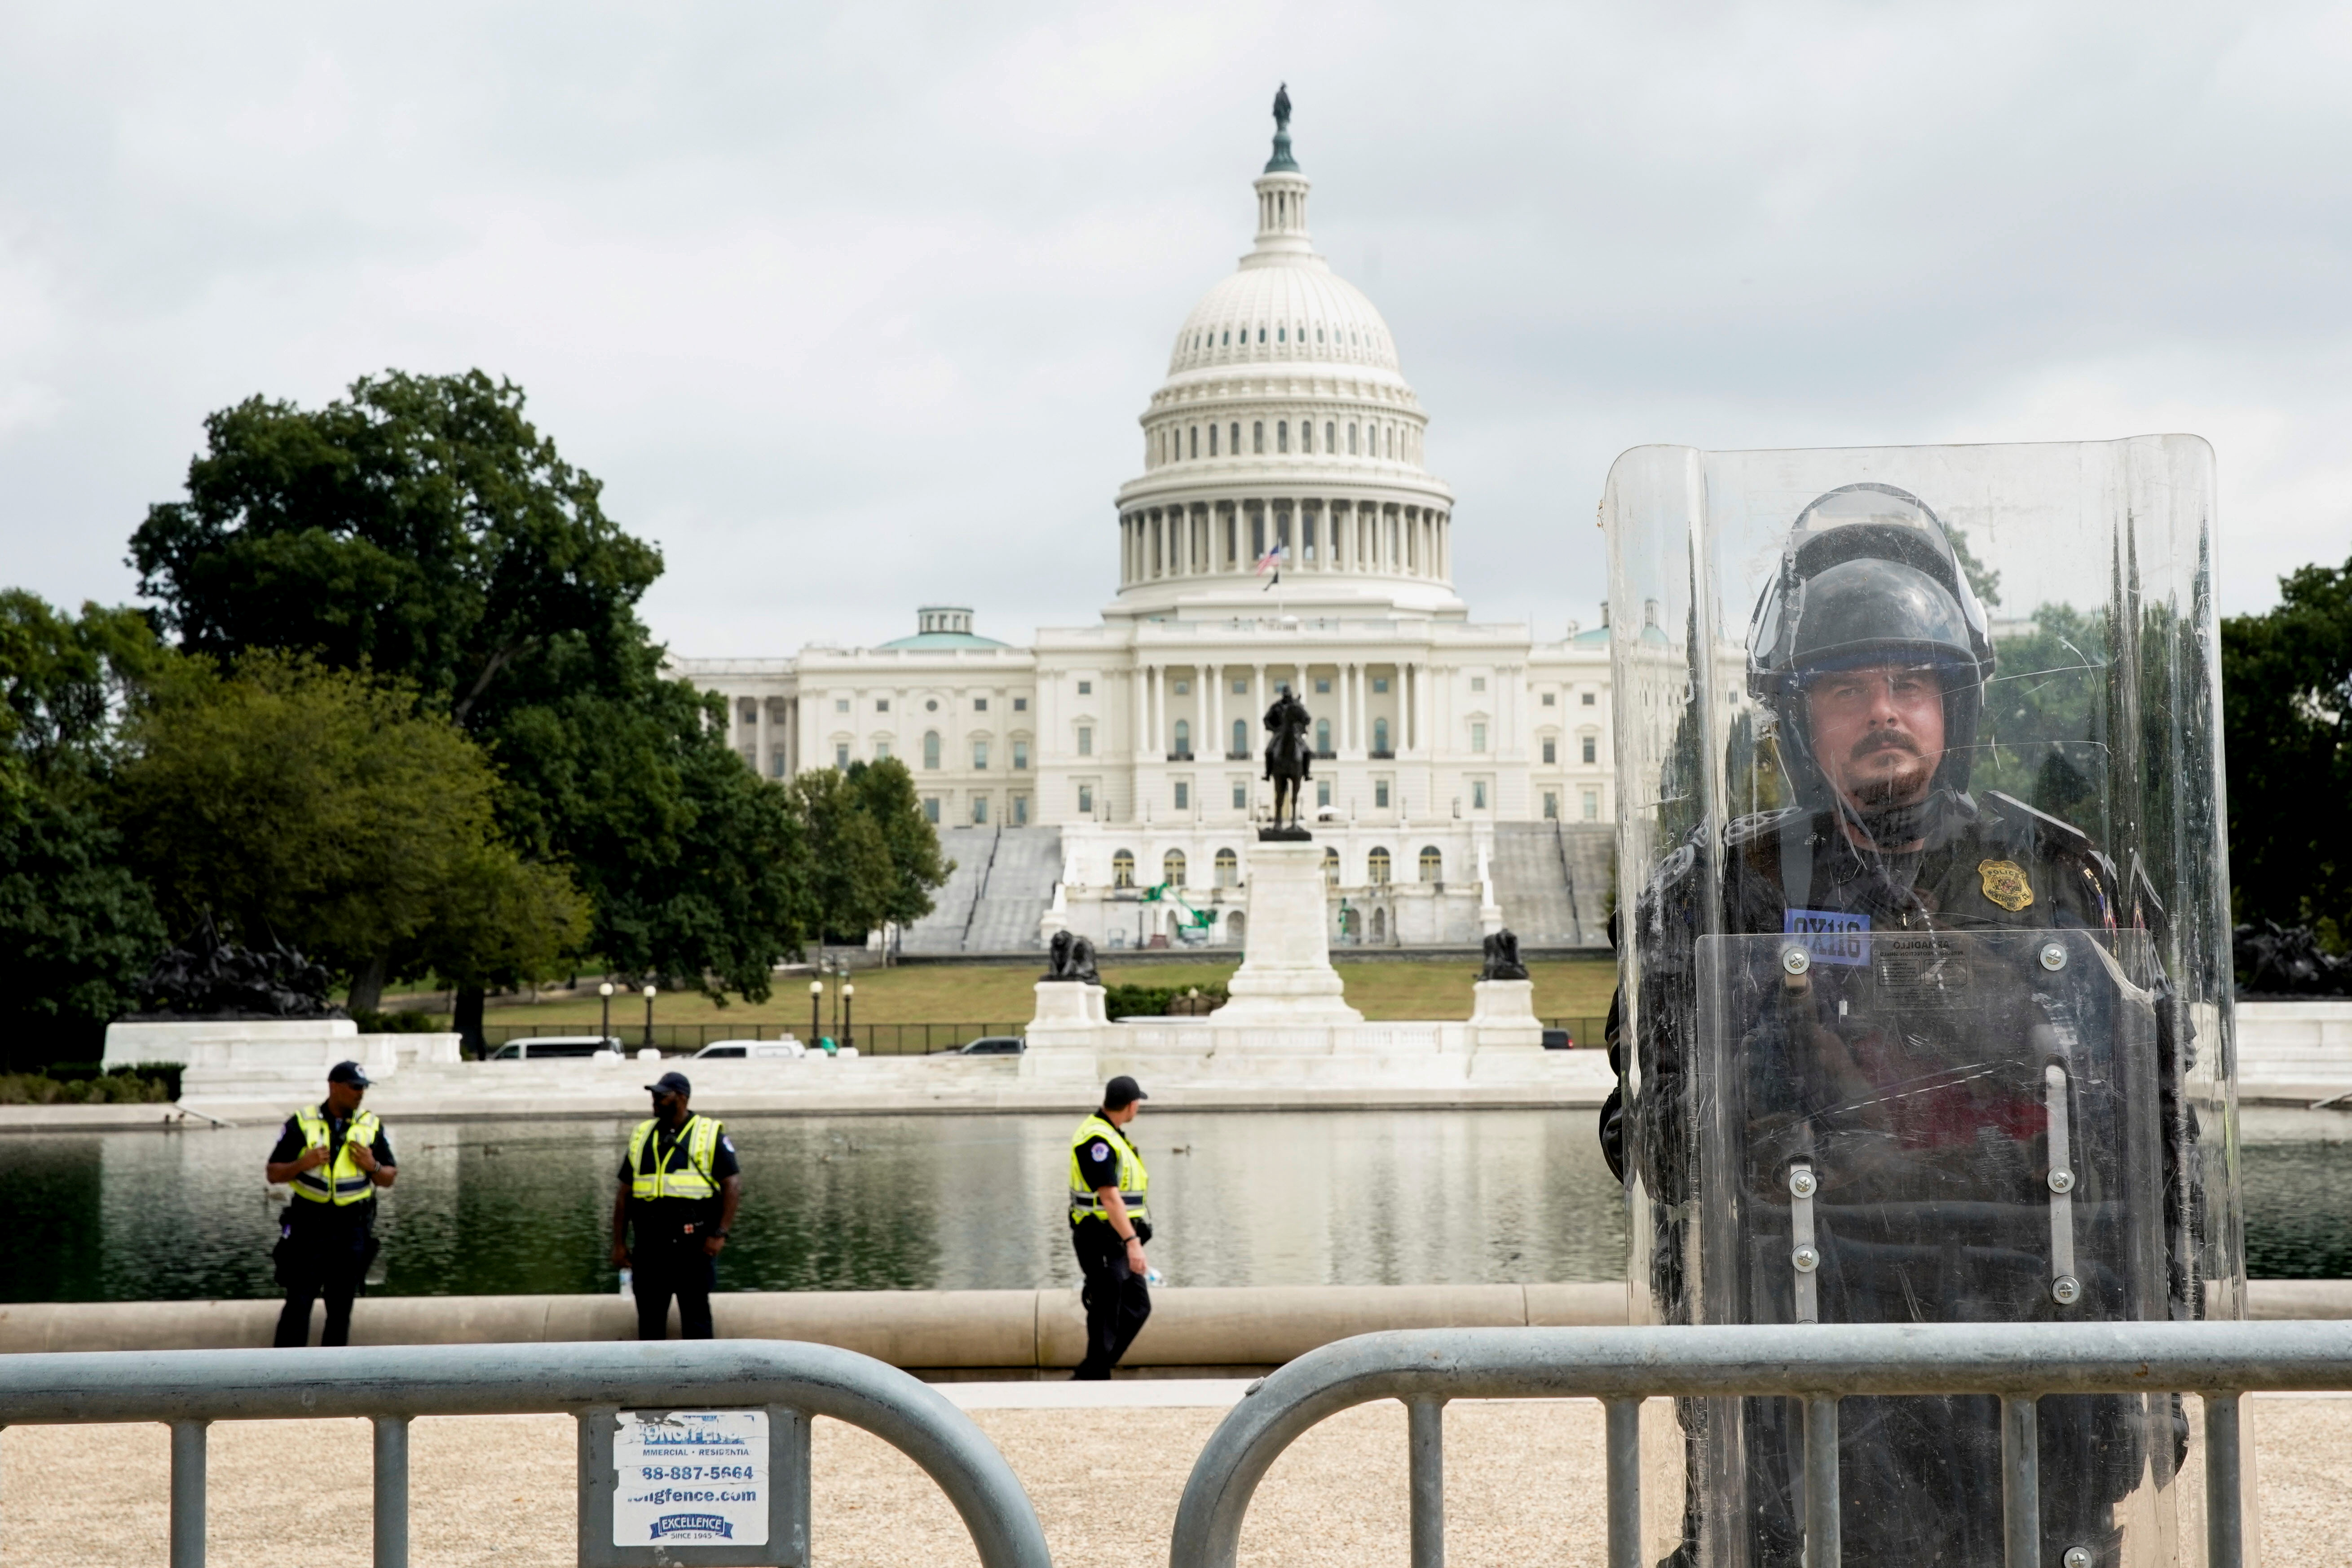 A riot police officer stands guard during a rally in support of defendants being prosecuted in the January 6 attack on the Capitol. REUTERS/Elizabeth Frantz/File Photo